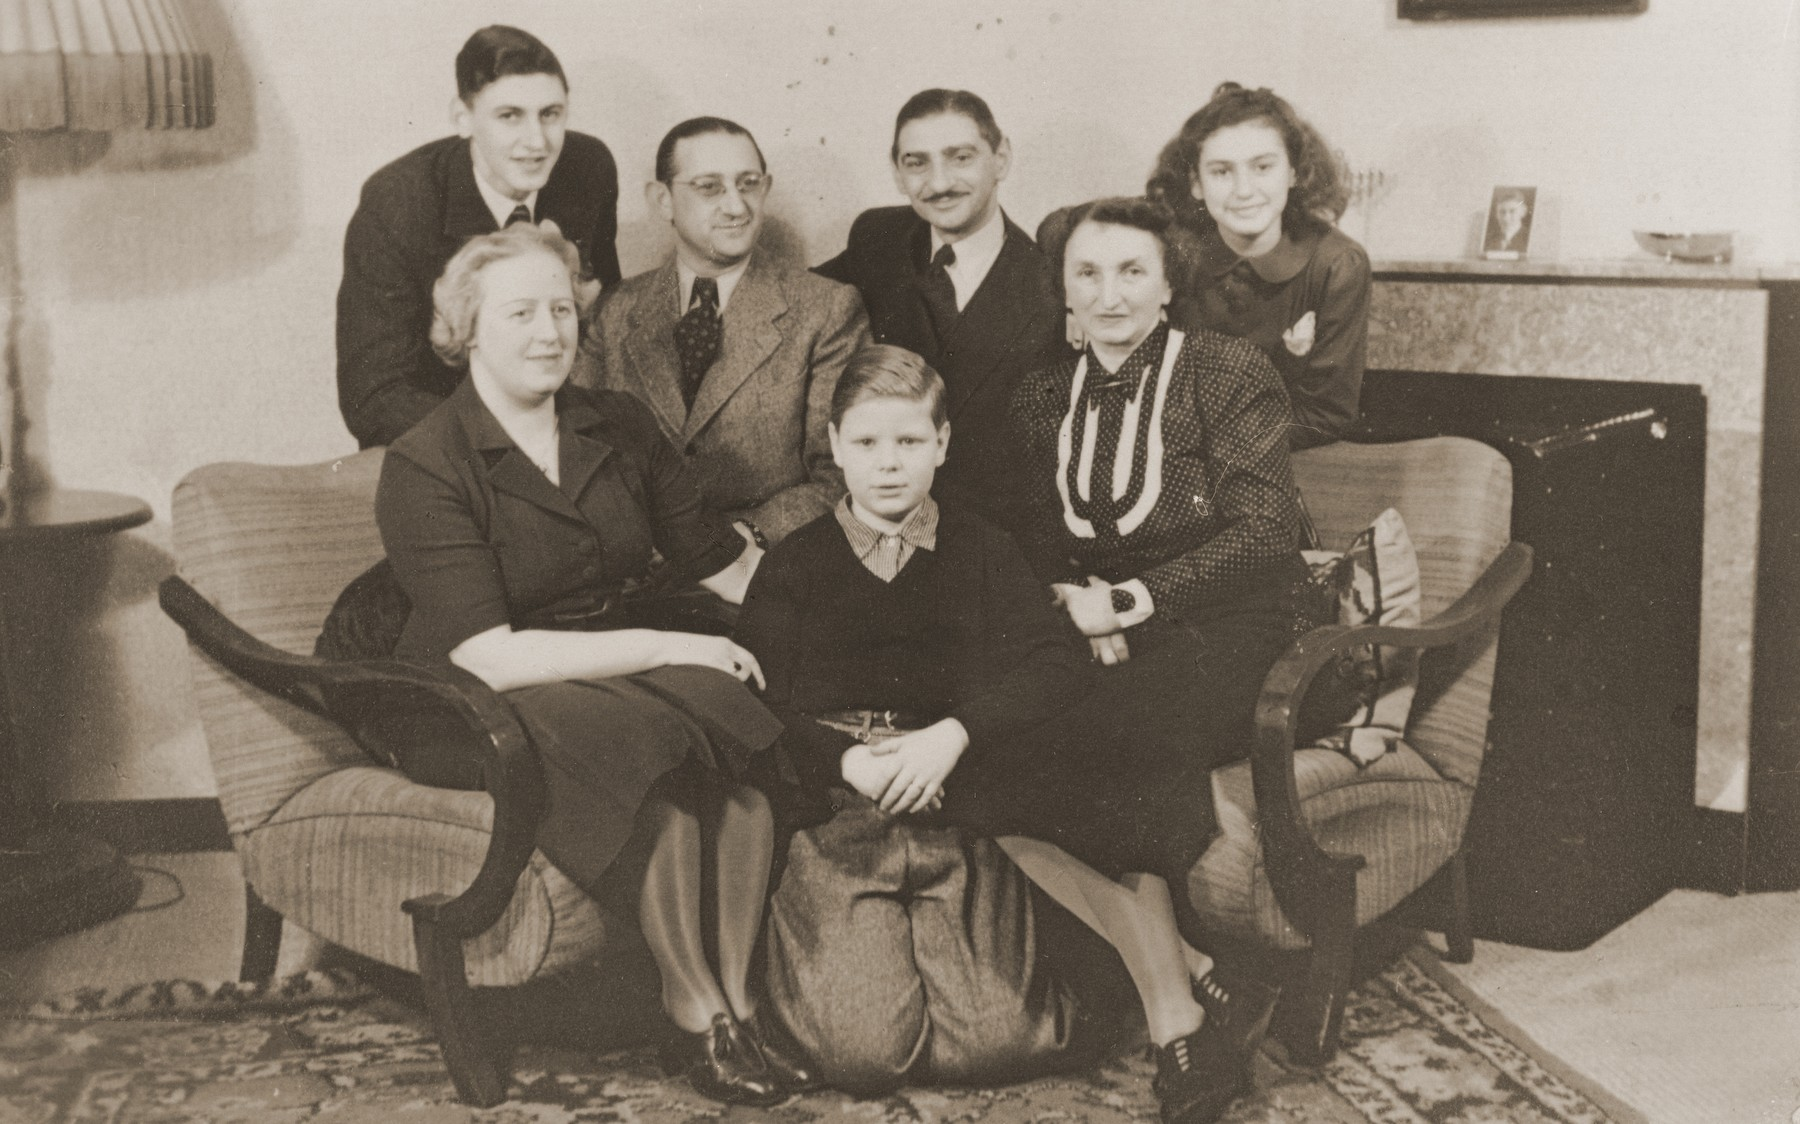 The Jacobsthal family poses with an aunt and uncle who are visiting their home in Amsterdam before emigrating to Chile.  Hilde Jacobsthal is pictured at the top right.